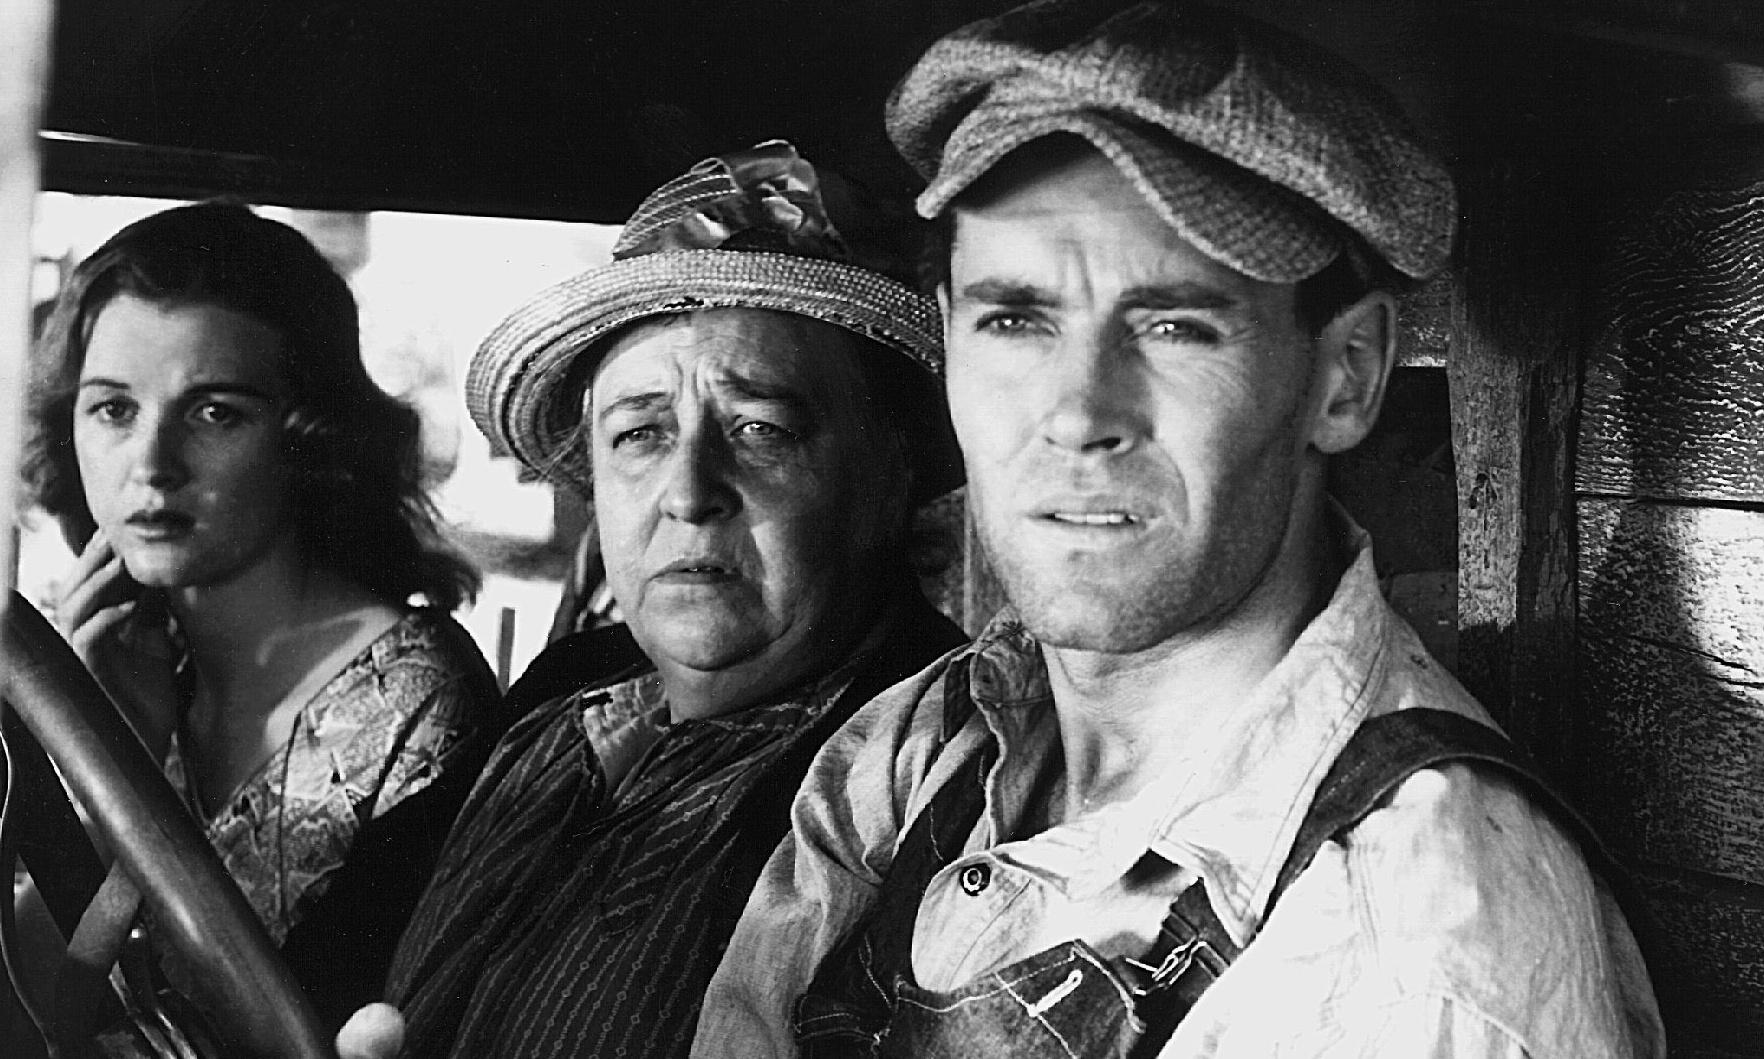 Steinbeck's Grapes of Wrath made into a film - archive, 1940